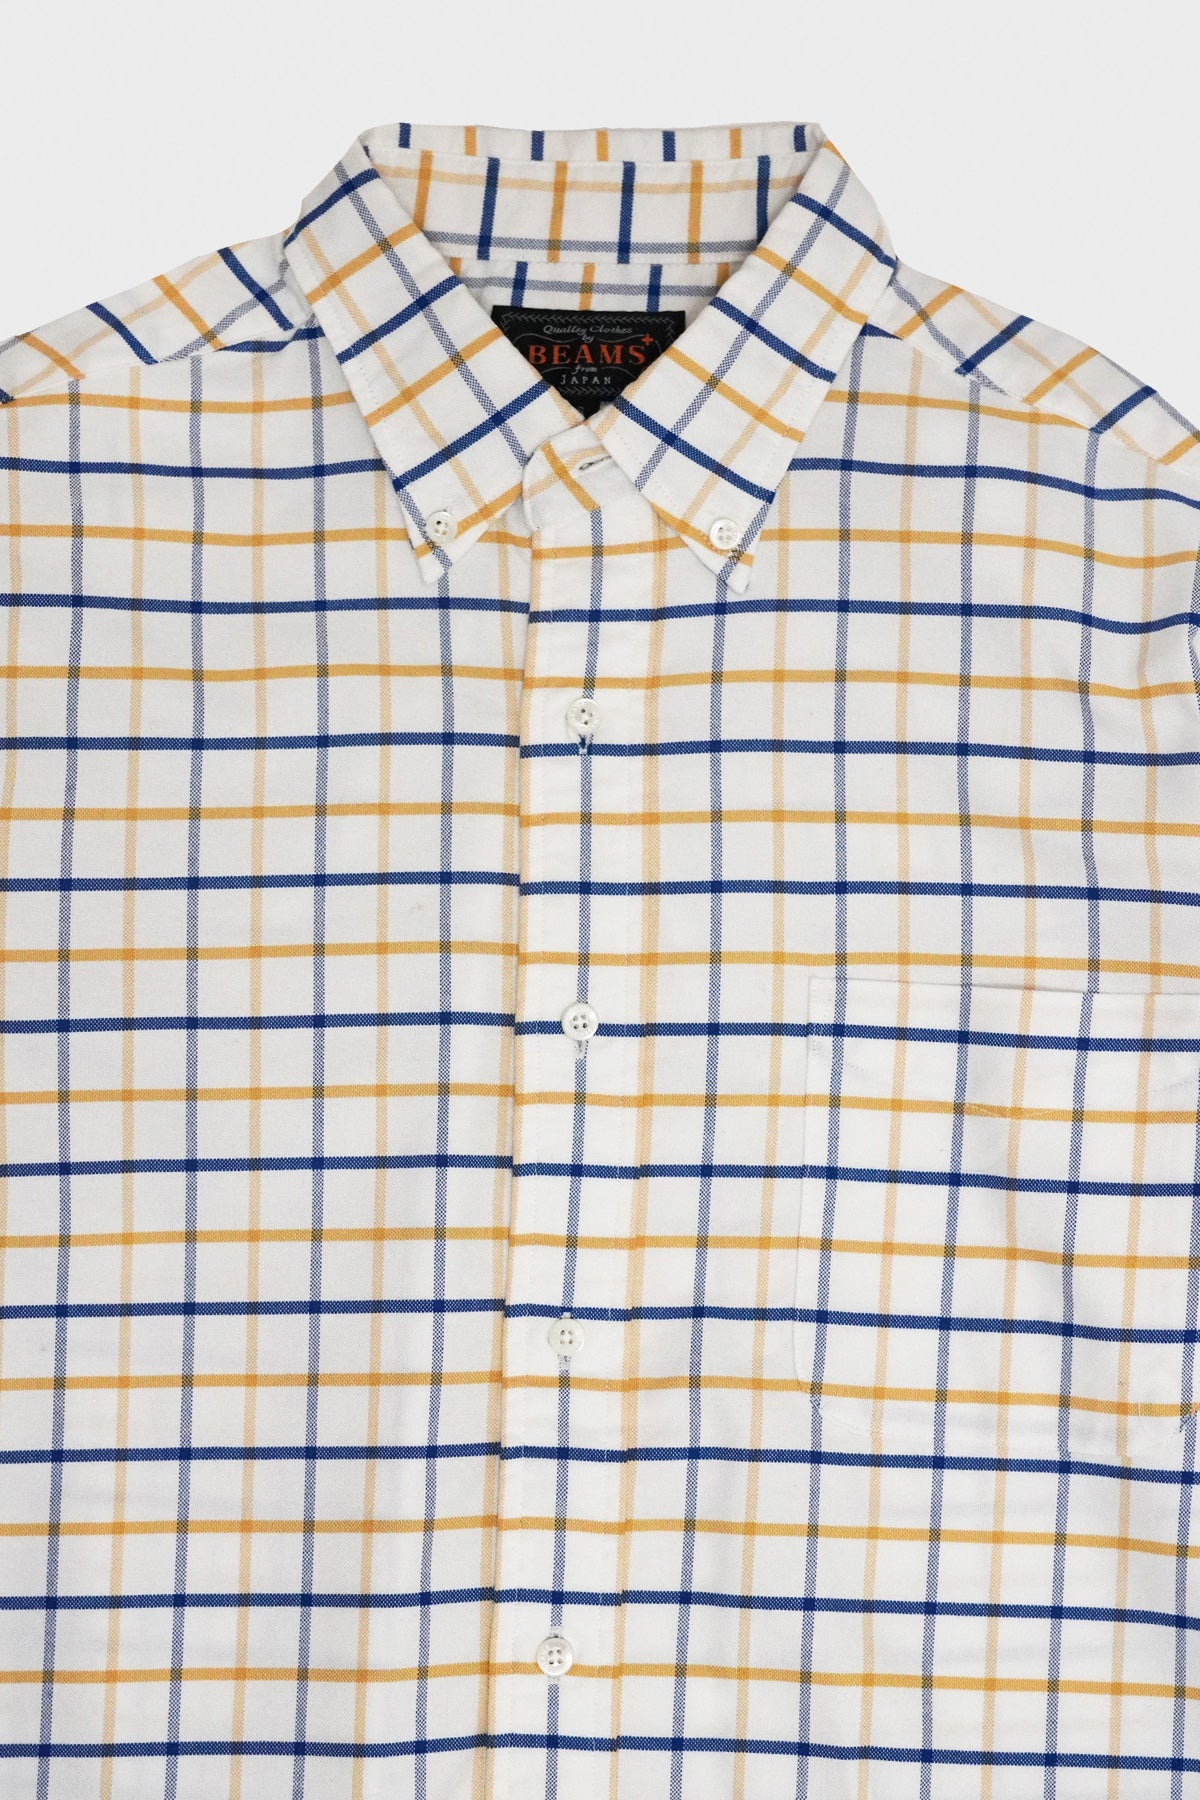 Beams Plus - Tattersall Stretch Oxford Shirt - Yellow - Canoe Club